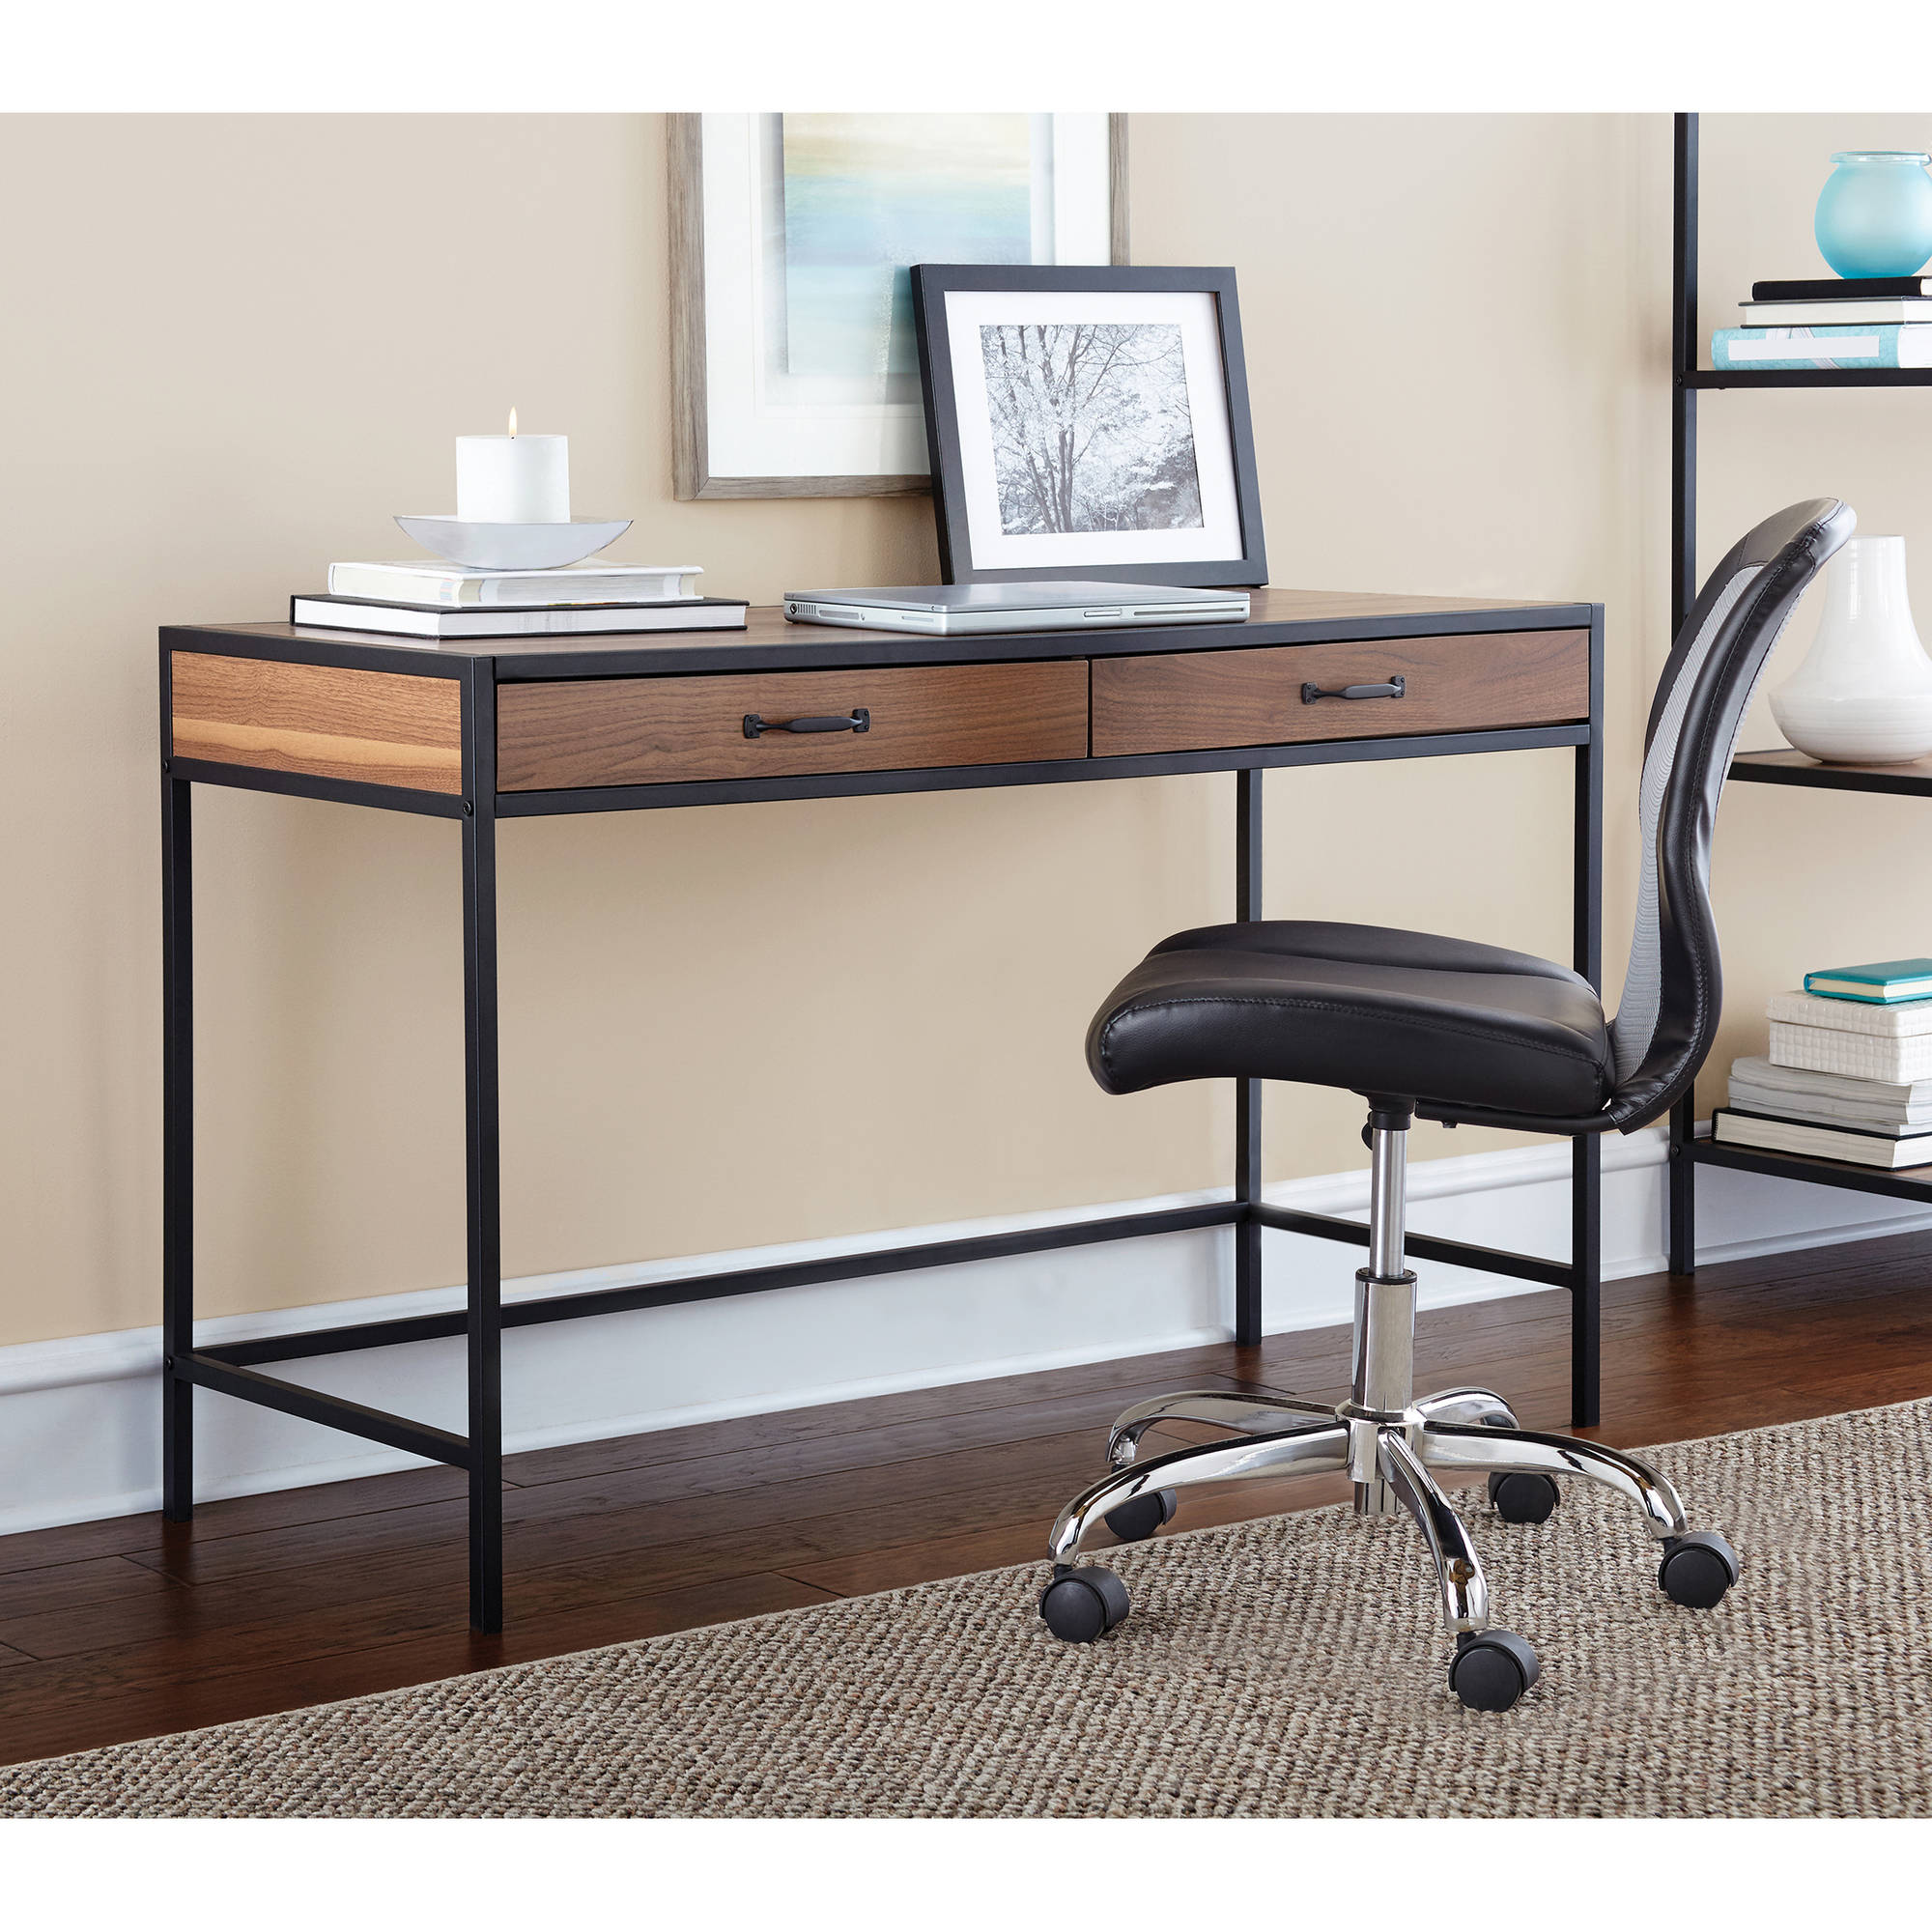 Writing Desk With Drawers Small Table Home Office Study Work Dorm Stand Console